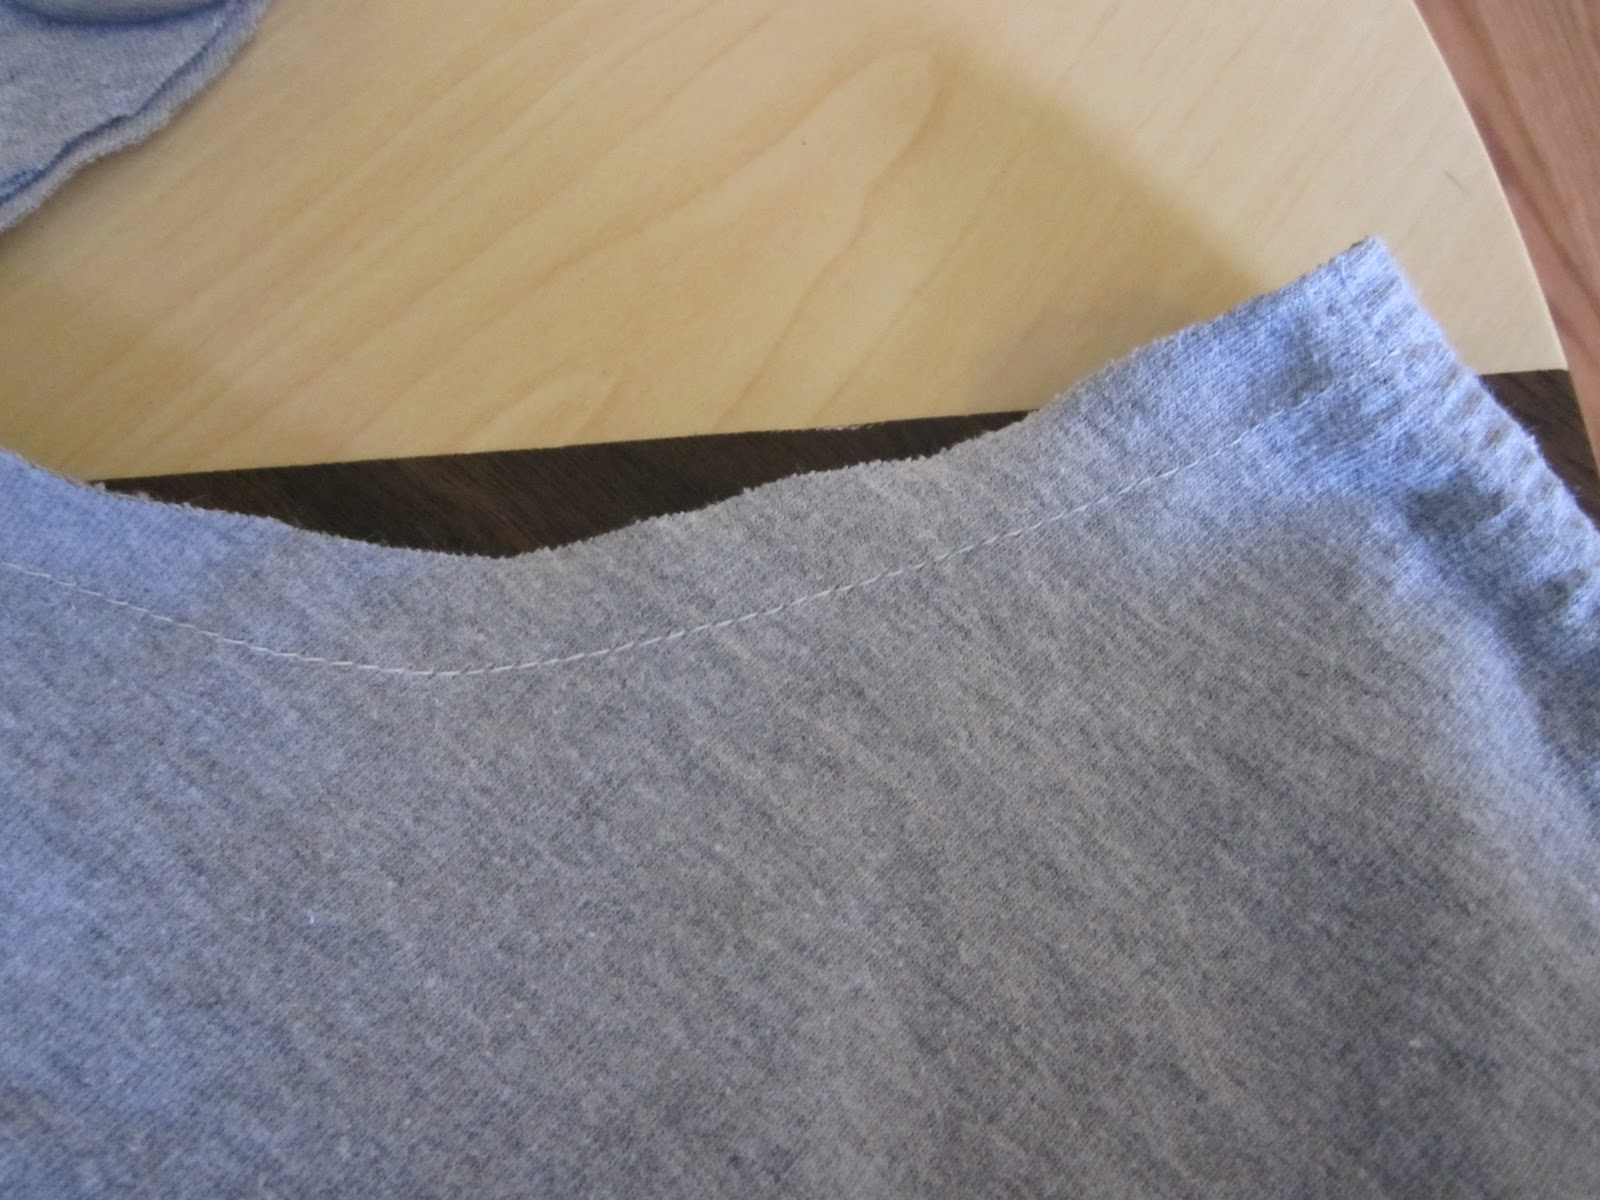 how to get rid of pen marks on fabric